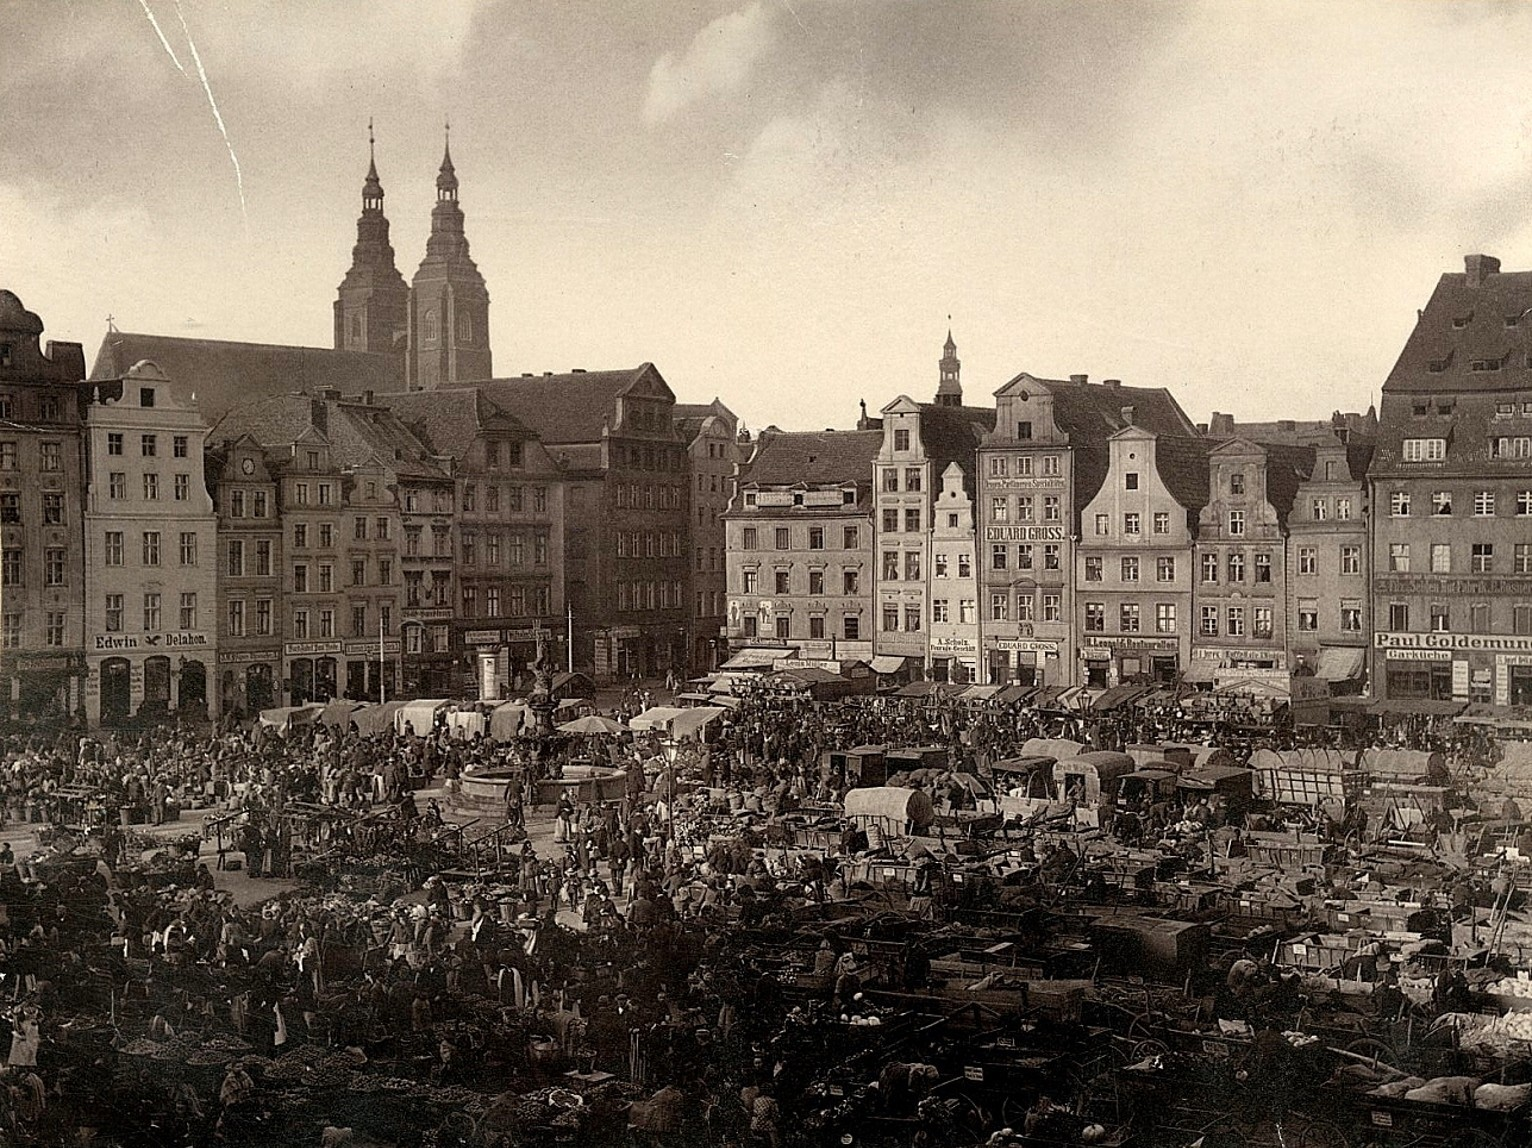 https://upload.wikimedia.org/wikipedia/commons/e/e8/New_Market_Square%2C_Plac_Nowy_Targ%2C_Neumarkt_in_Wroc%C5%82aw.jpg